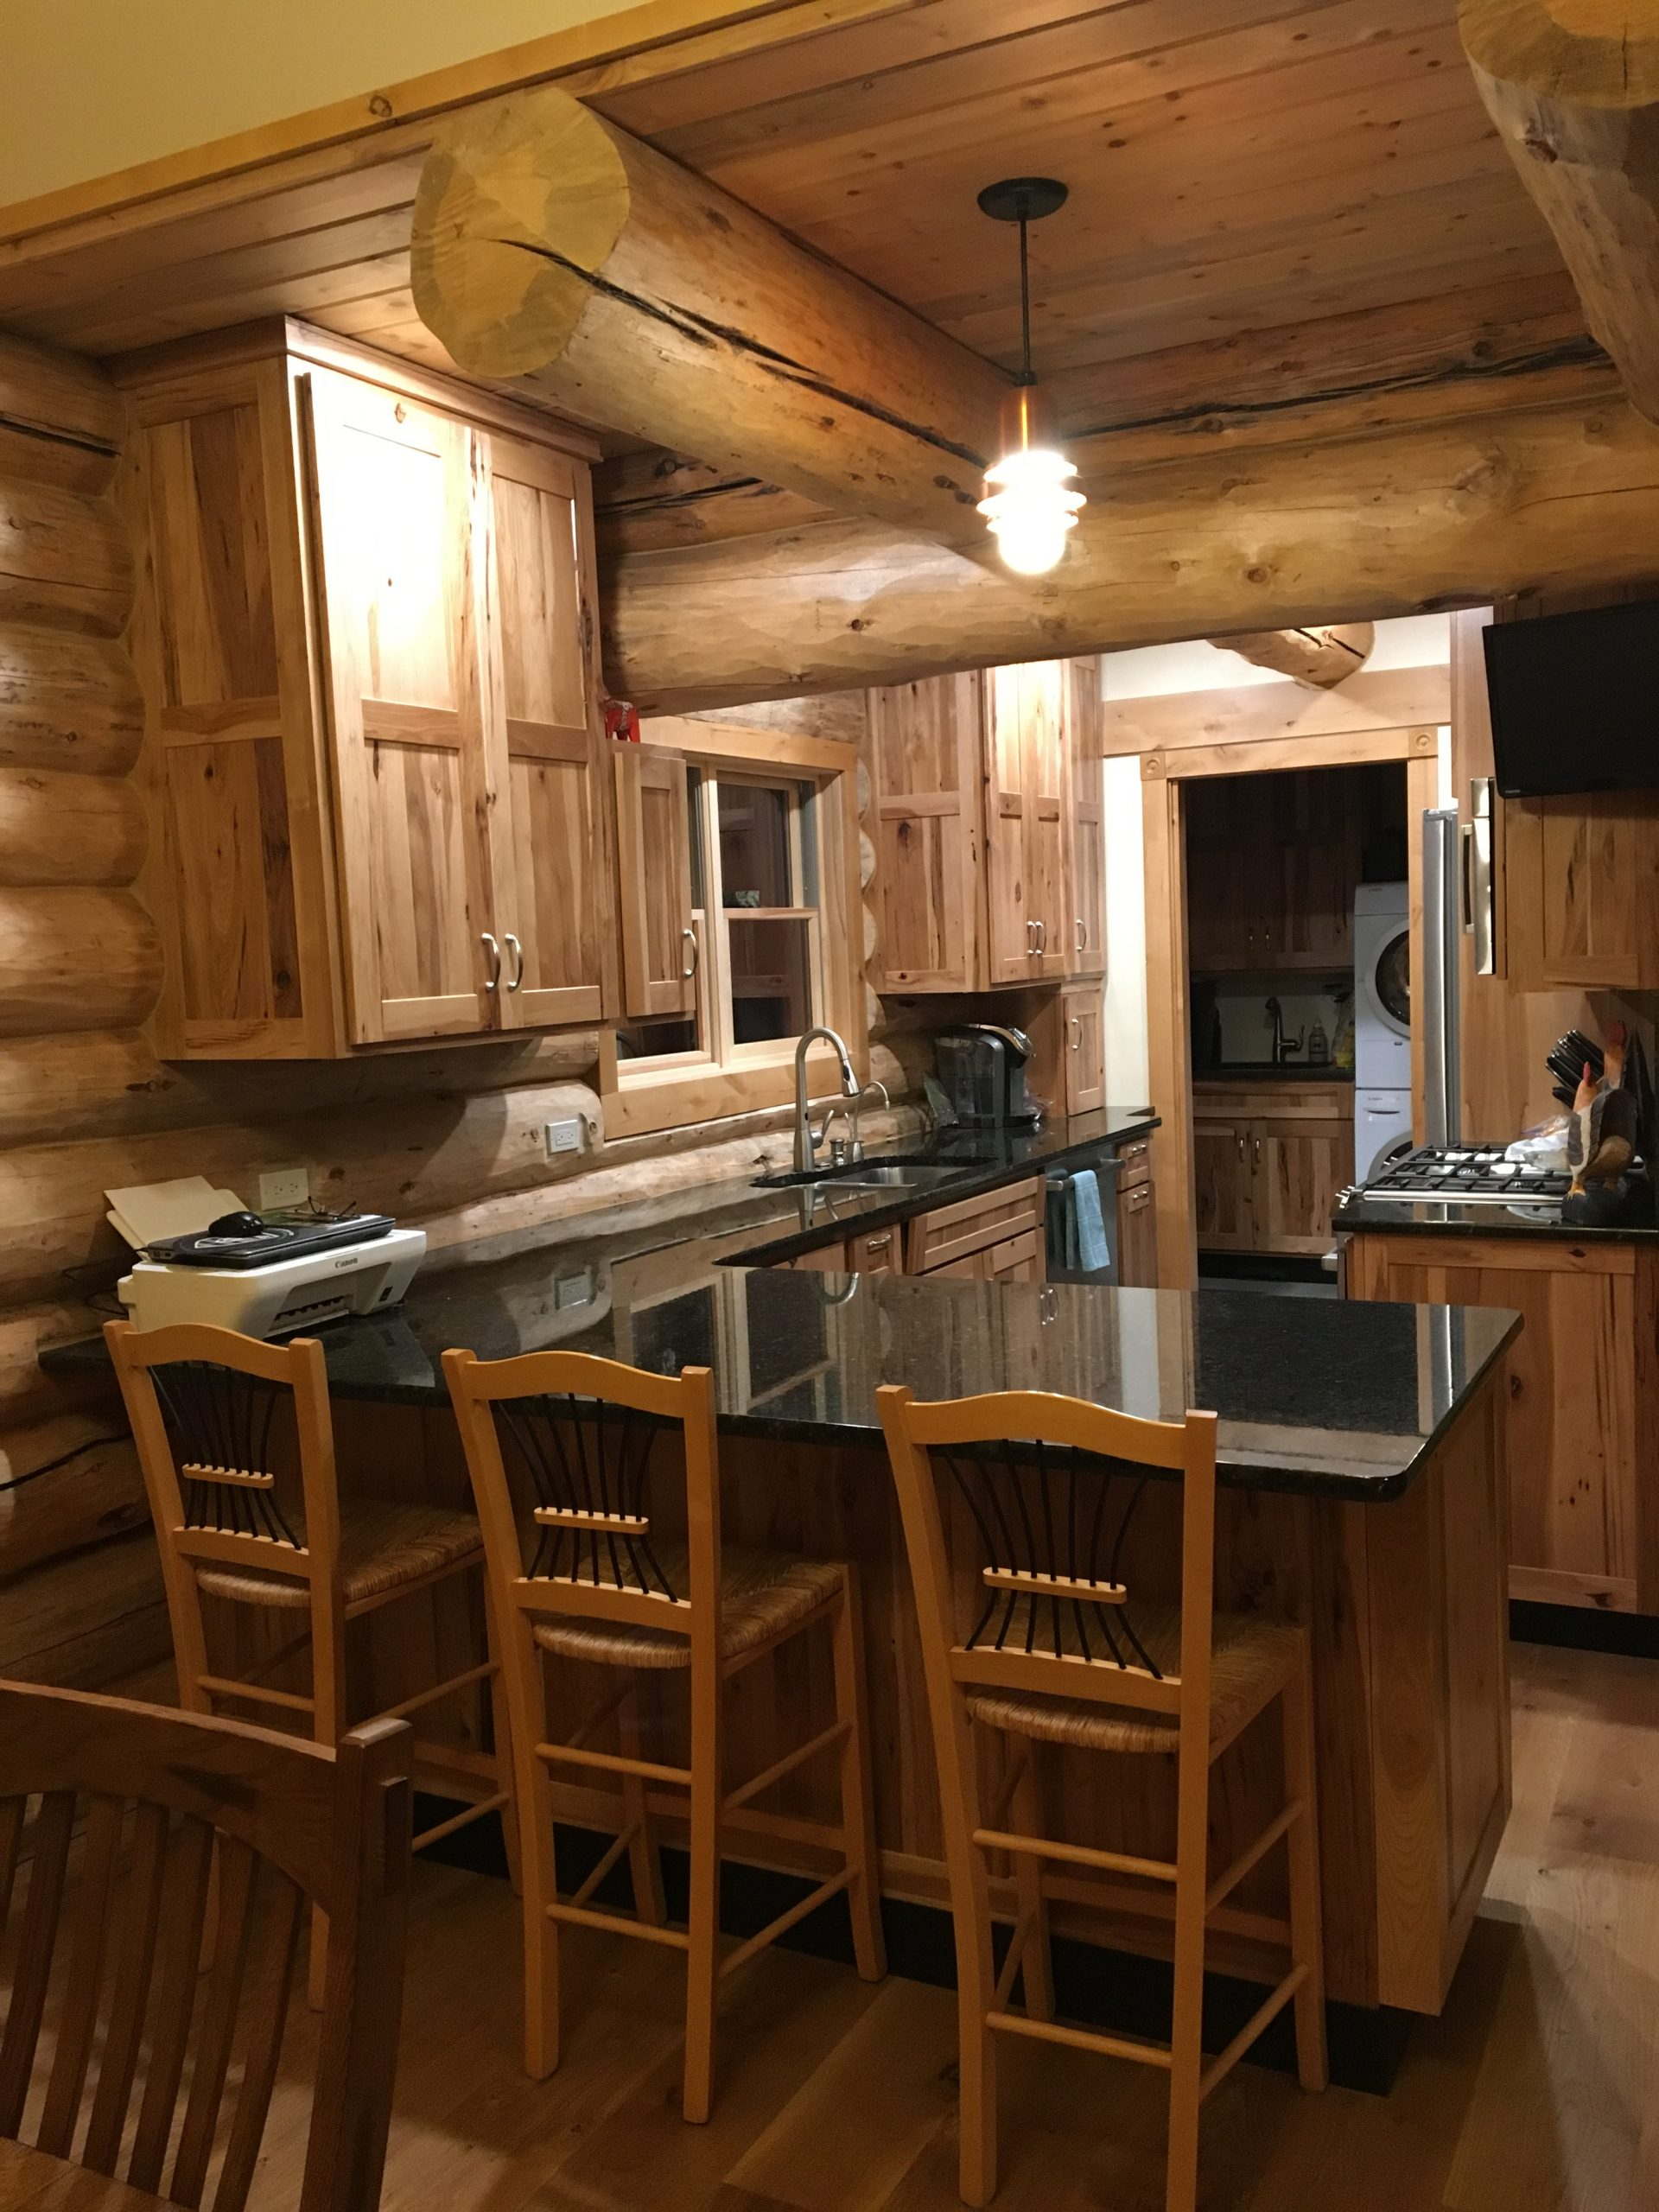 A small but efficient kitchen has custom cabinets and granite counter tops in this log home.